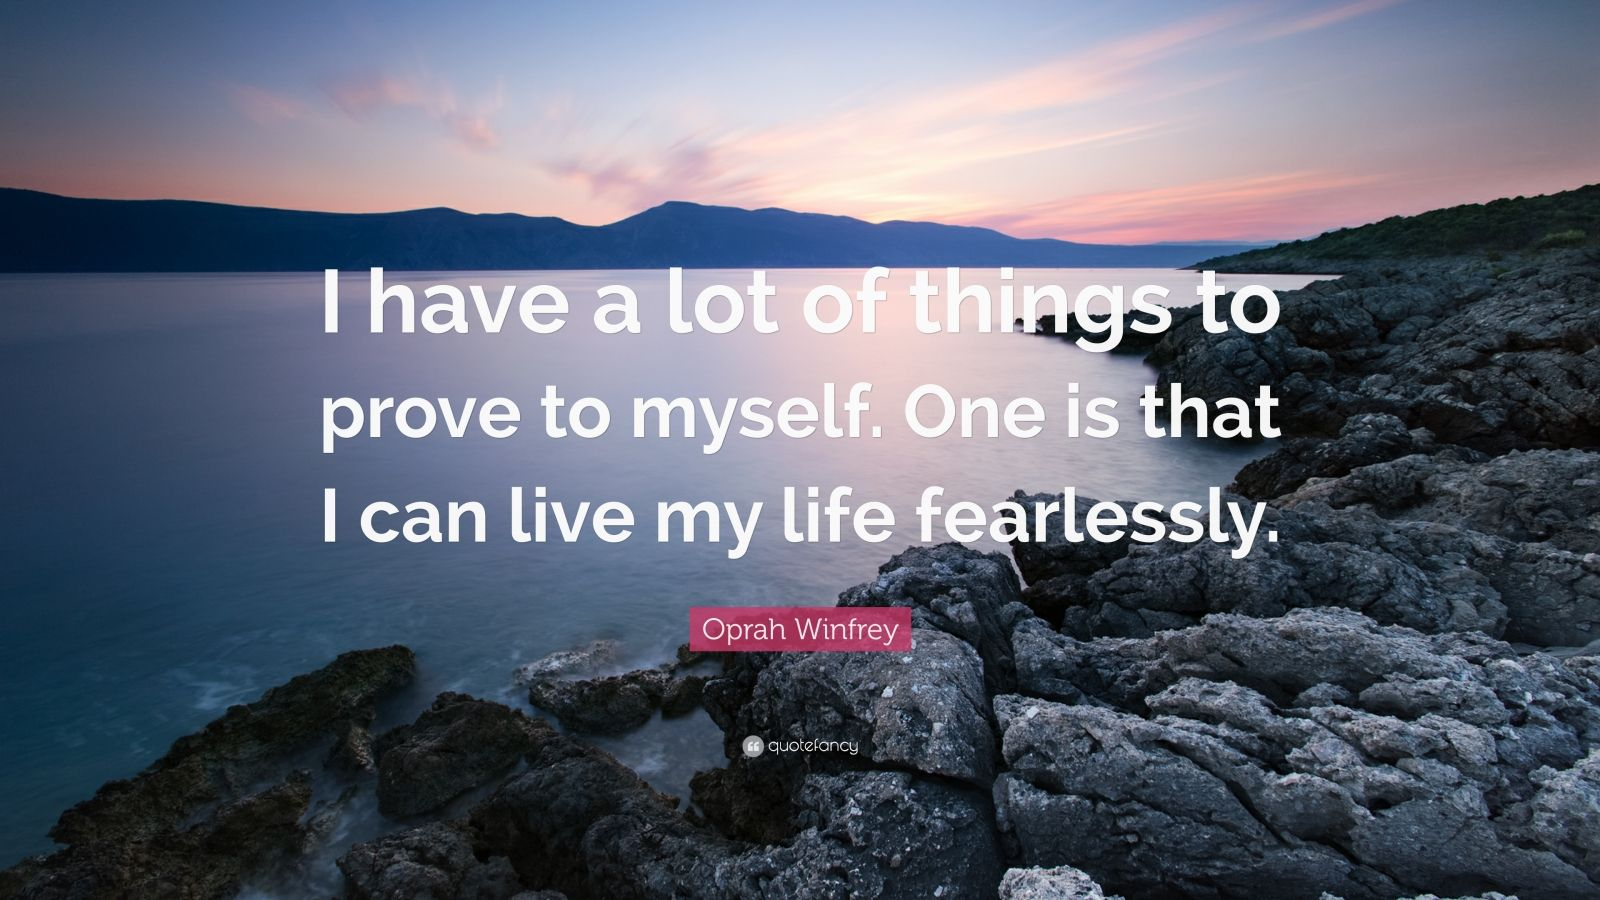 """Oprah Winfrey Quote: """"I have a lot of things to prove to myself. One is that I can live my life fearlessly."""""""